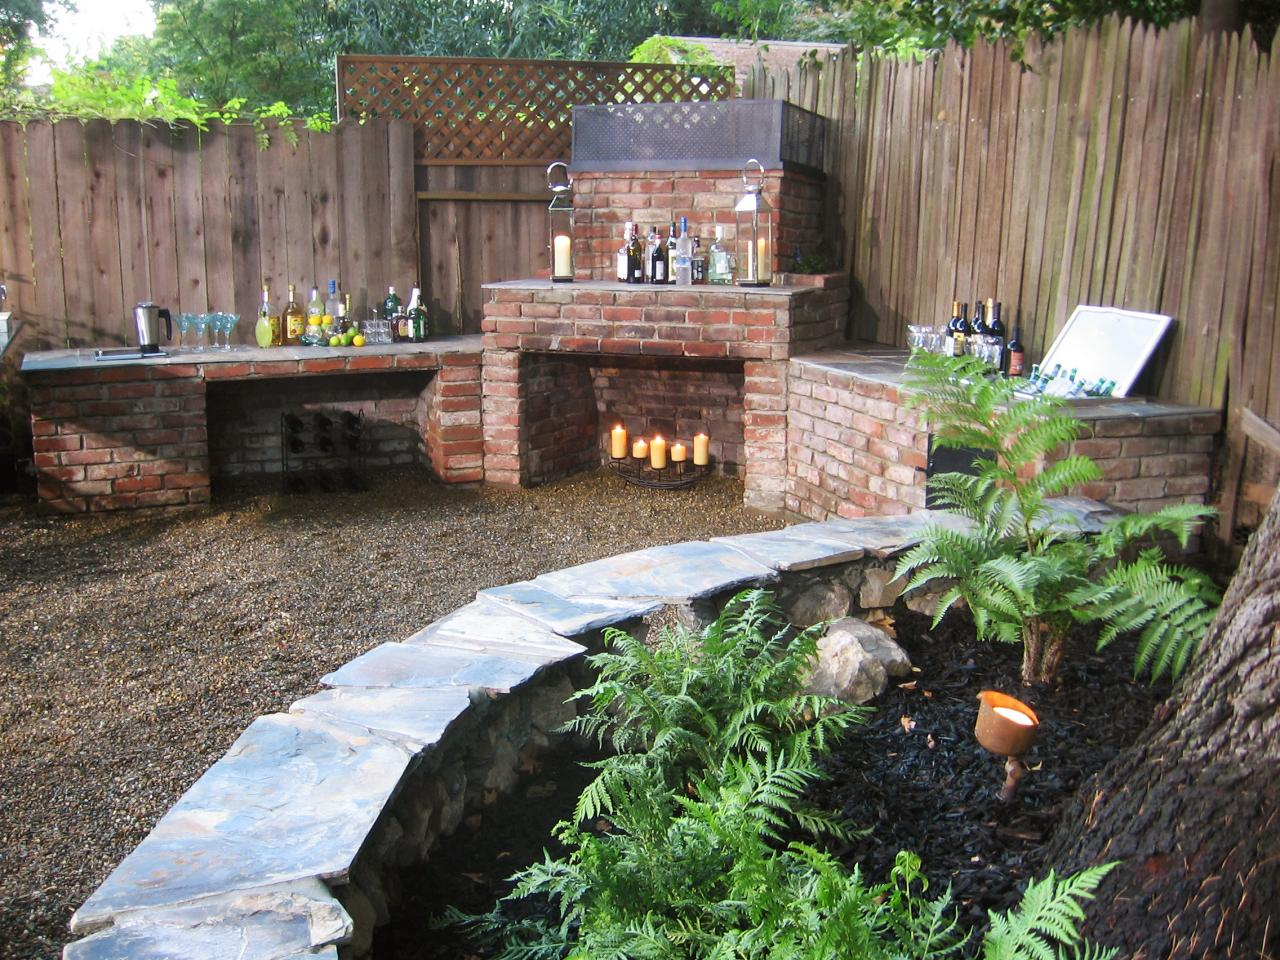 66 Fire Pit and Outdoor Fireplace Ideas | DIY Network Blog ... on Outdoor Kitchen And Fireplace Ideas id=85737